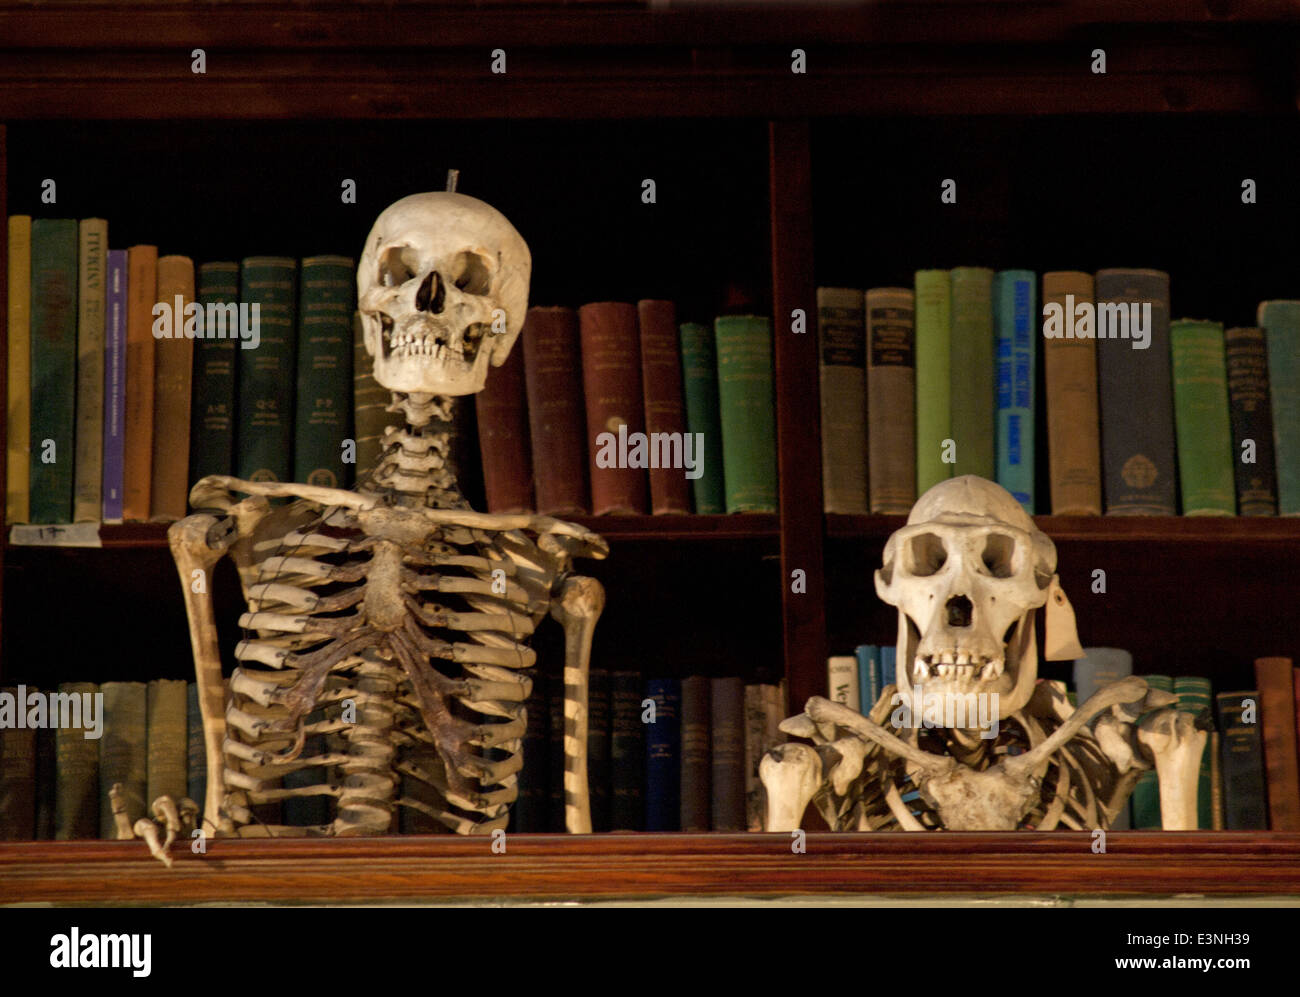 Grant Museum Of Zoology And Comparative Anatomy Stock Photos & Grant ...